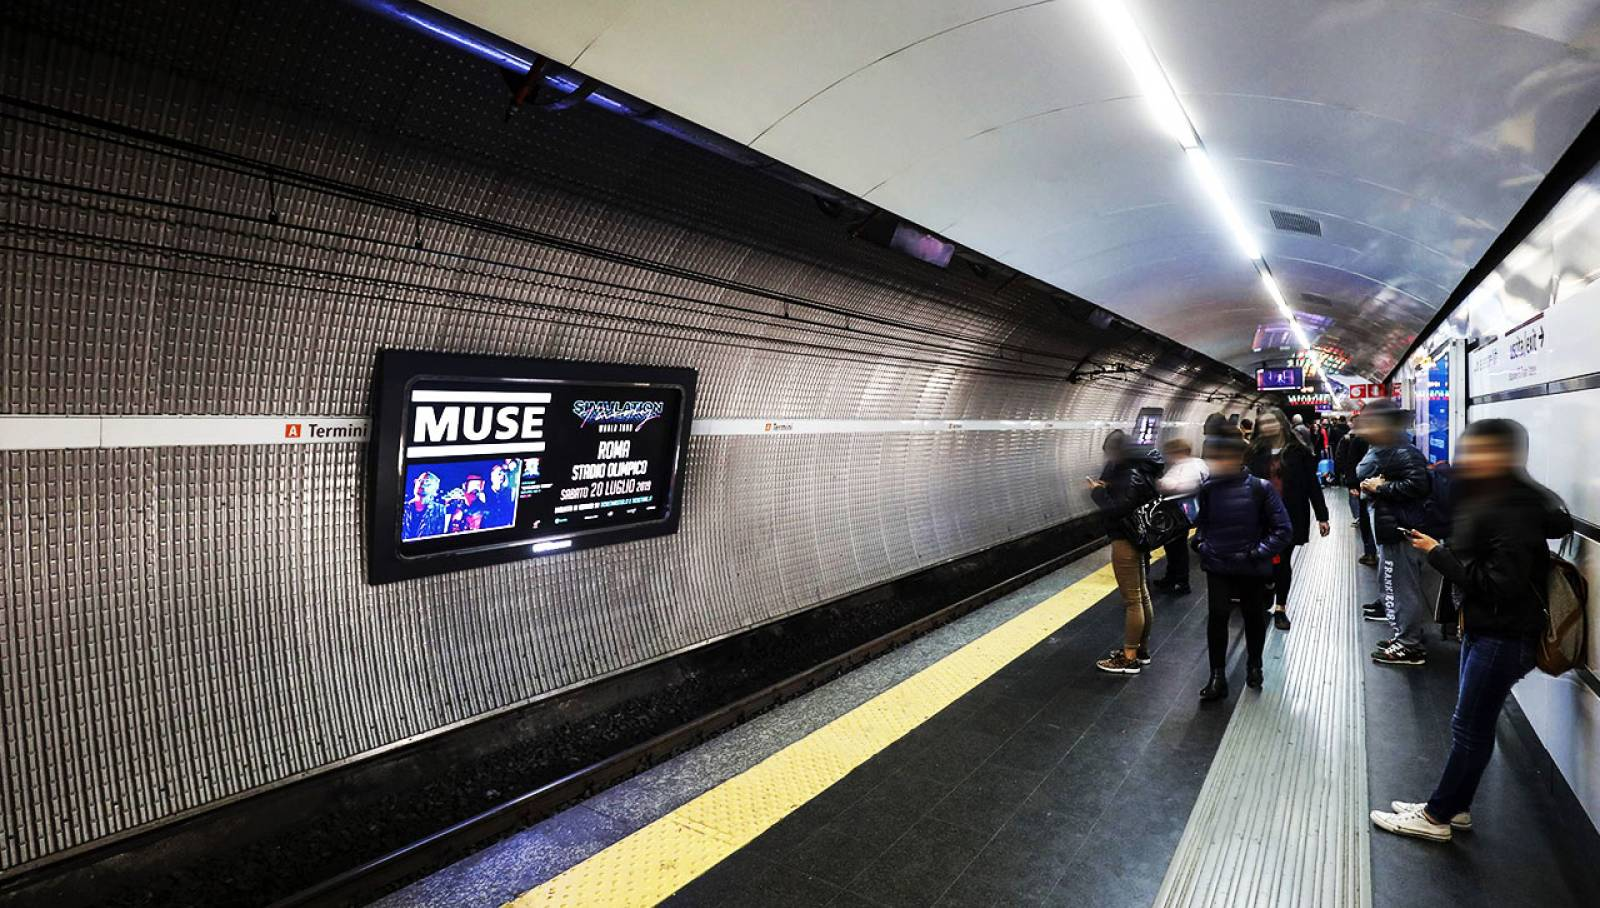 OOH advertising a Roma IGPDecaux Horizon per i Muse